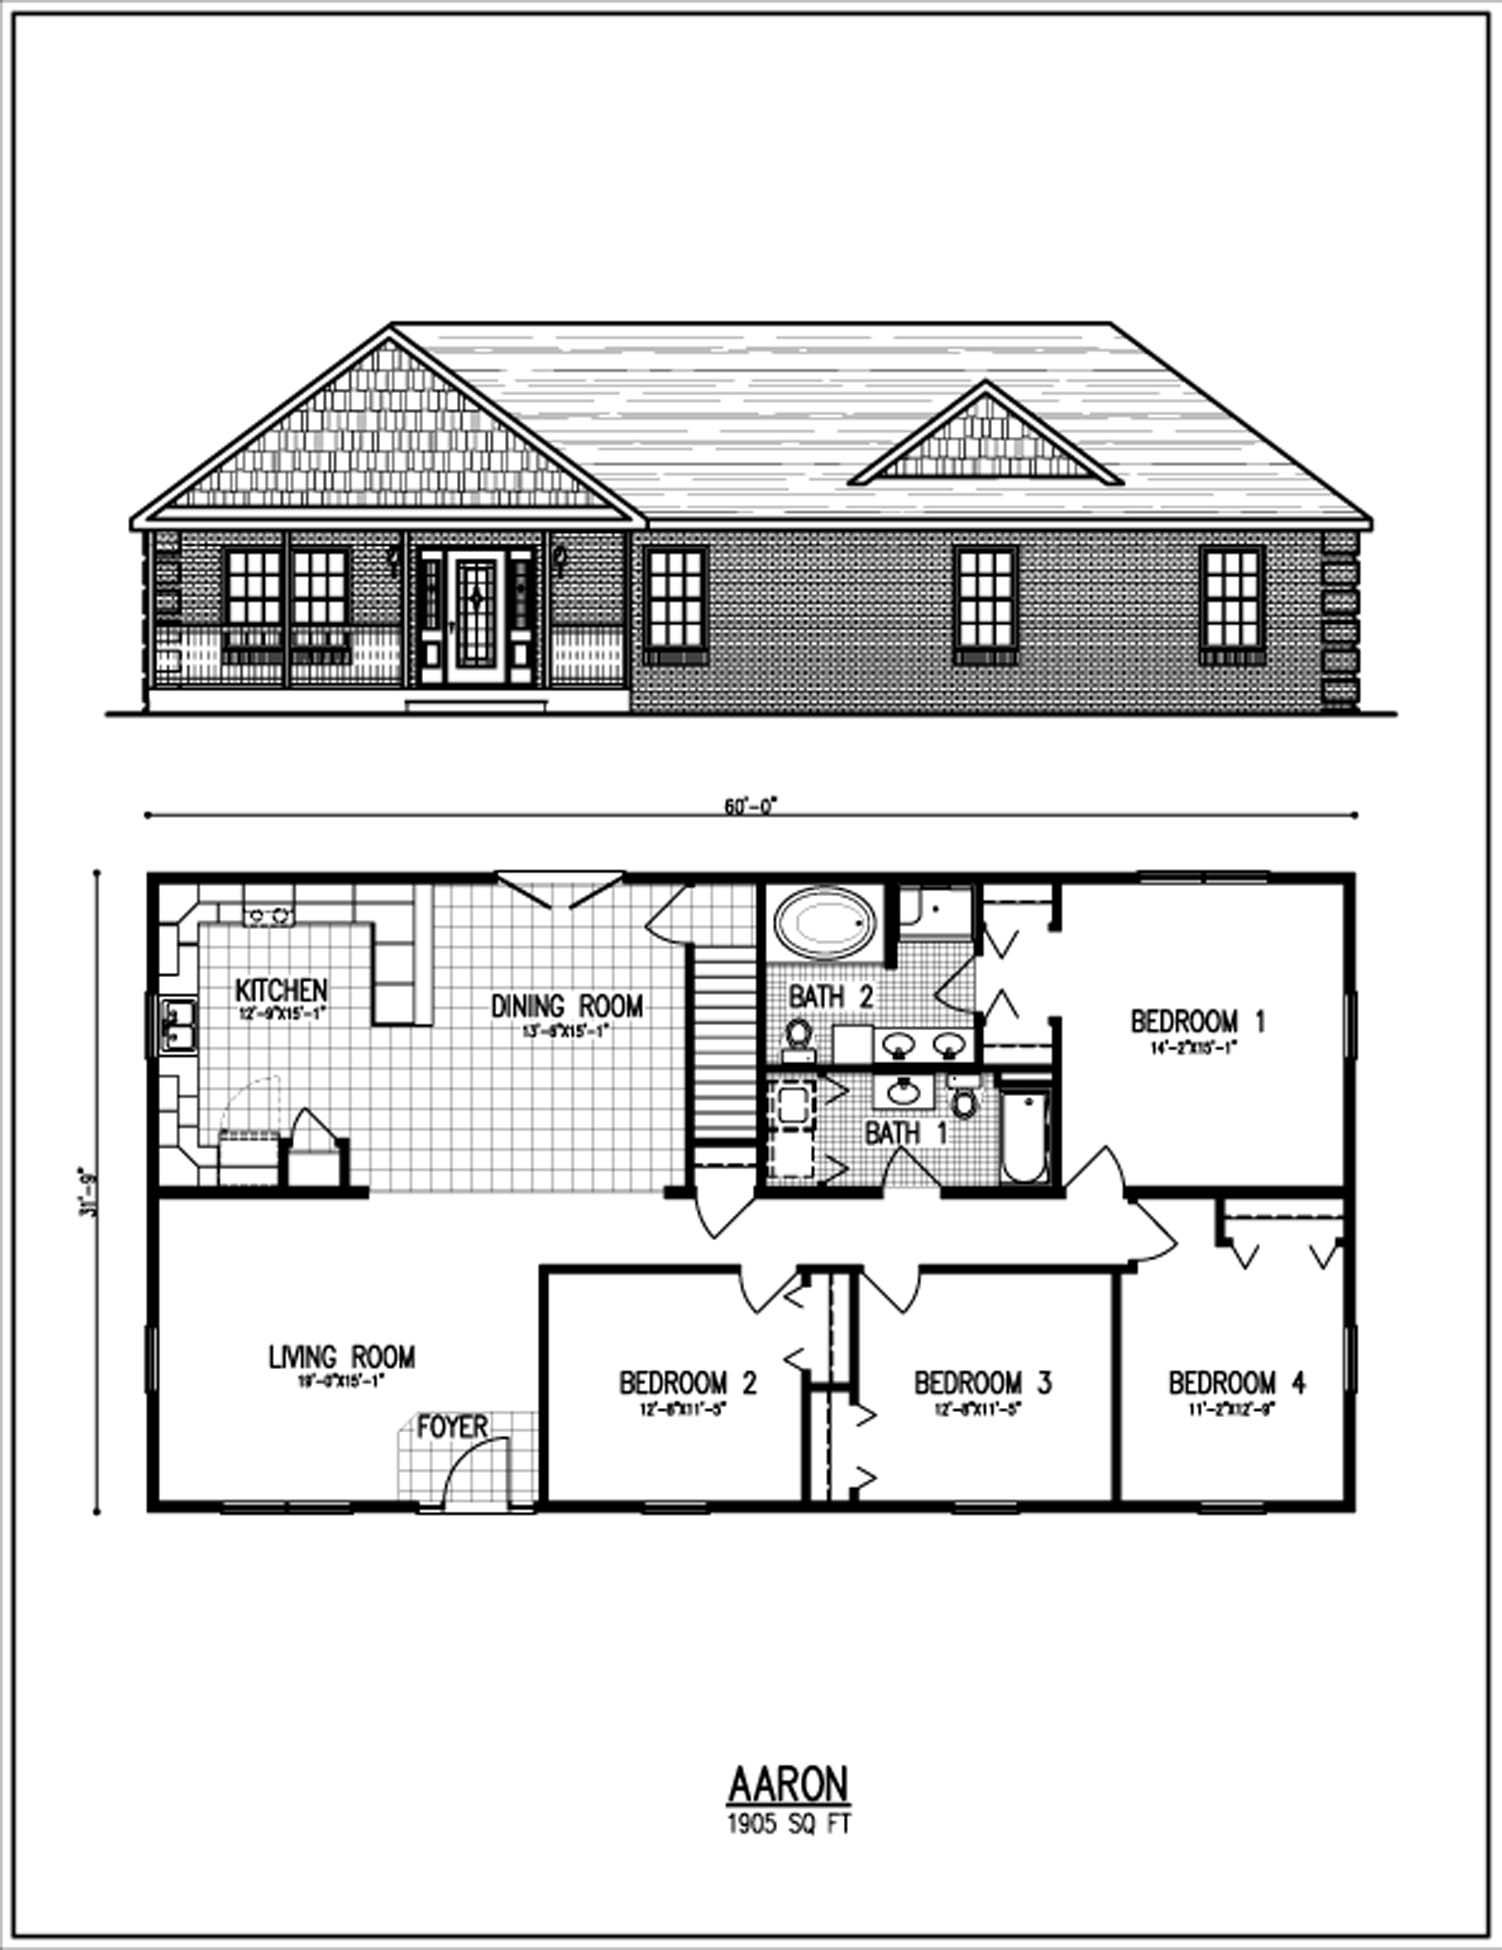 Ranch Home Plans get more specifics at family home plans plan 59024 Ranch Floor Plans All American Homes Floorplan Center Staffordcape